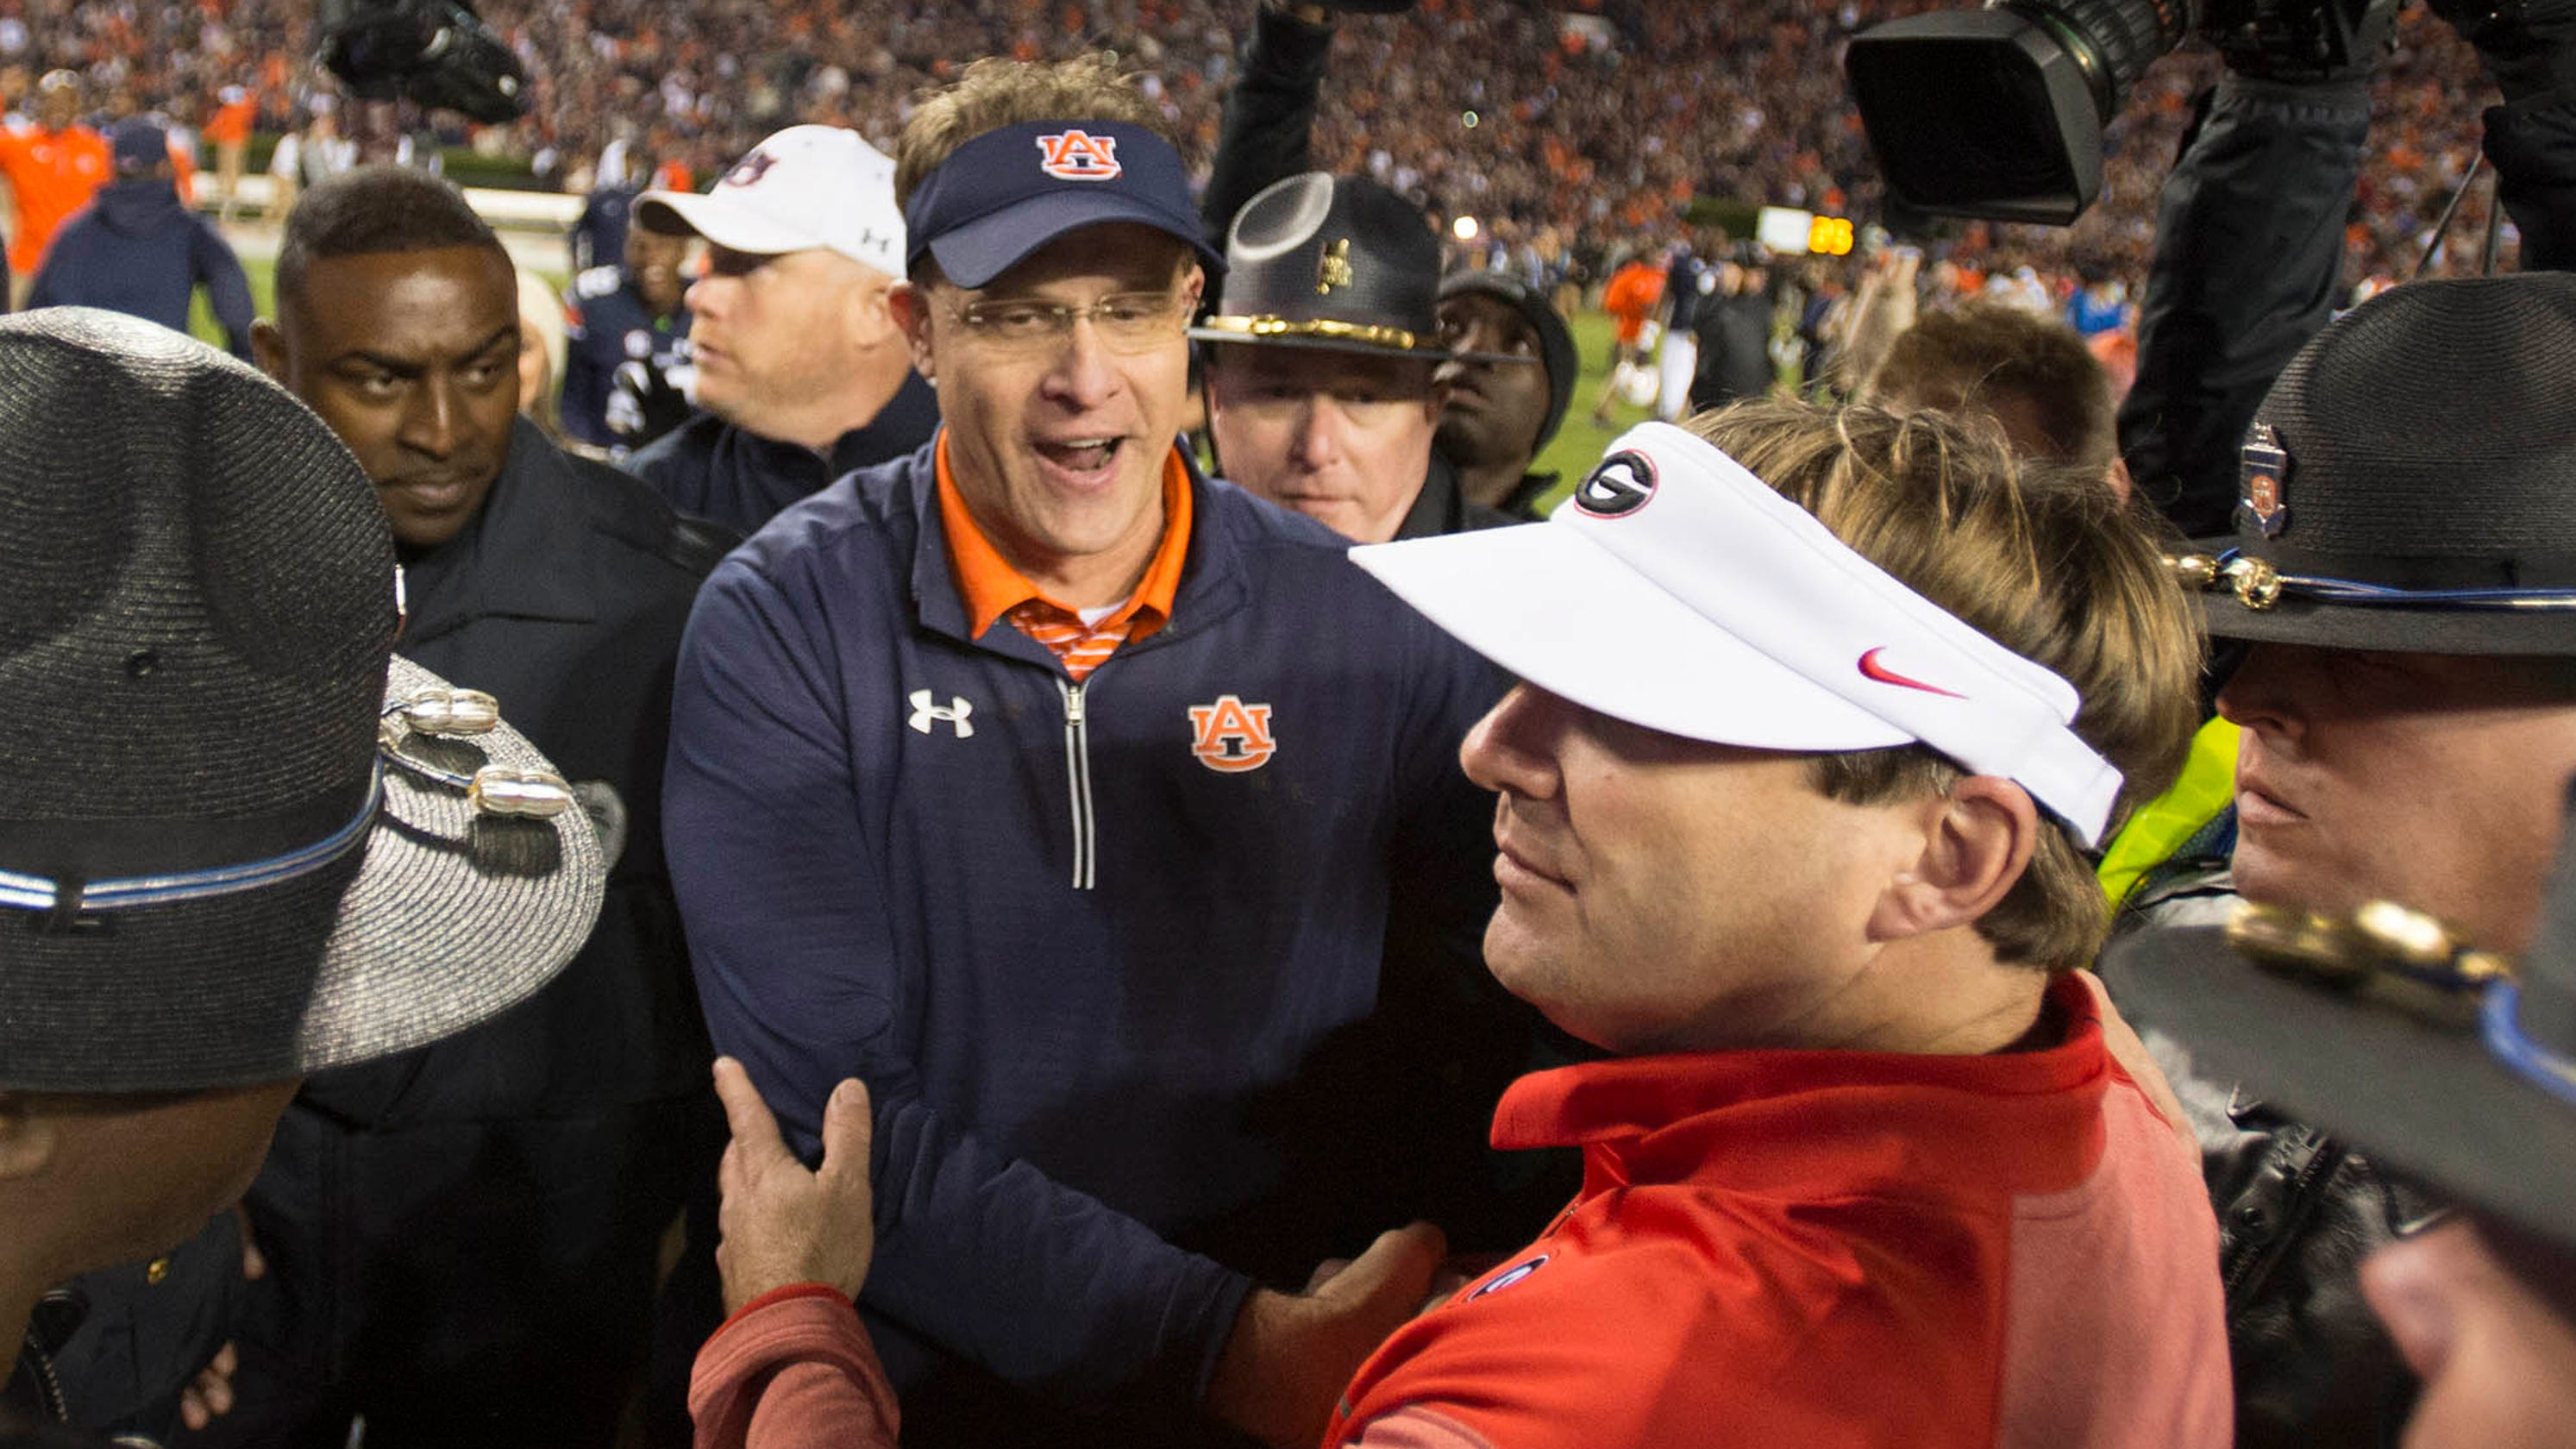 Auburn Football Schedule 2020 Auburn 2020 football schedule: Georgia game moves up, LSU back